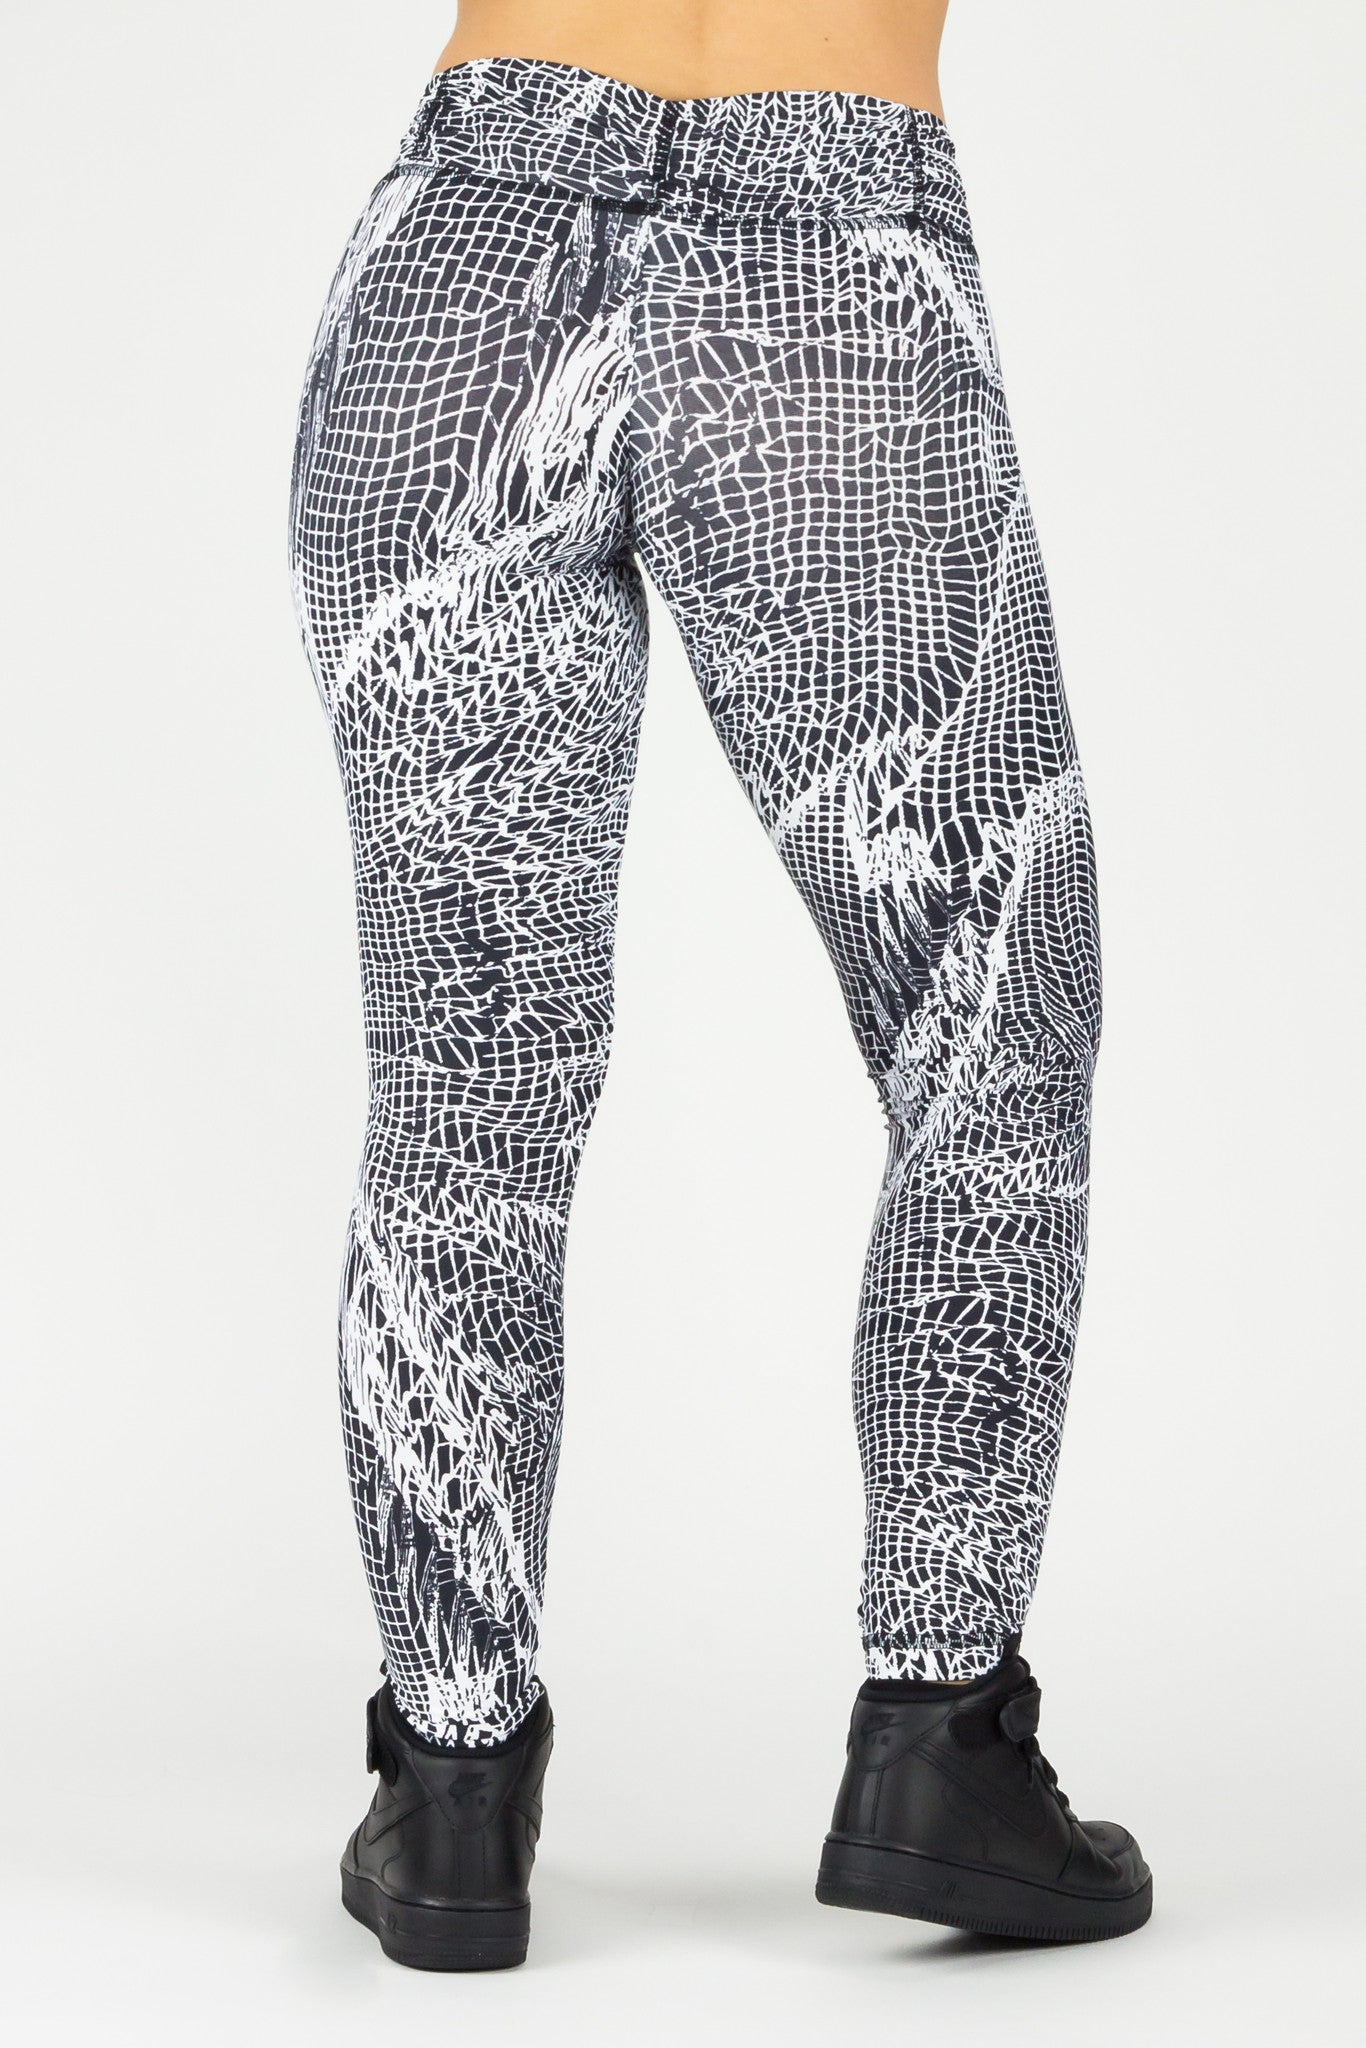 Legging Full Length Crazy Print - Amni, Black and White Web